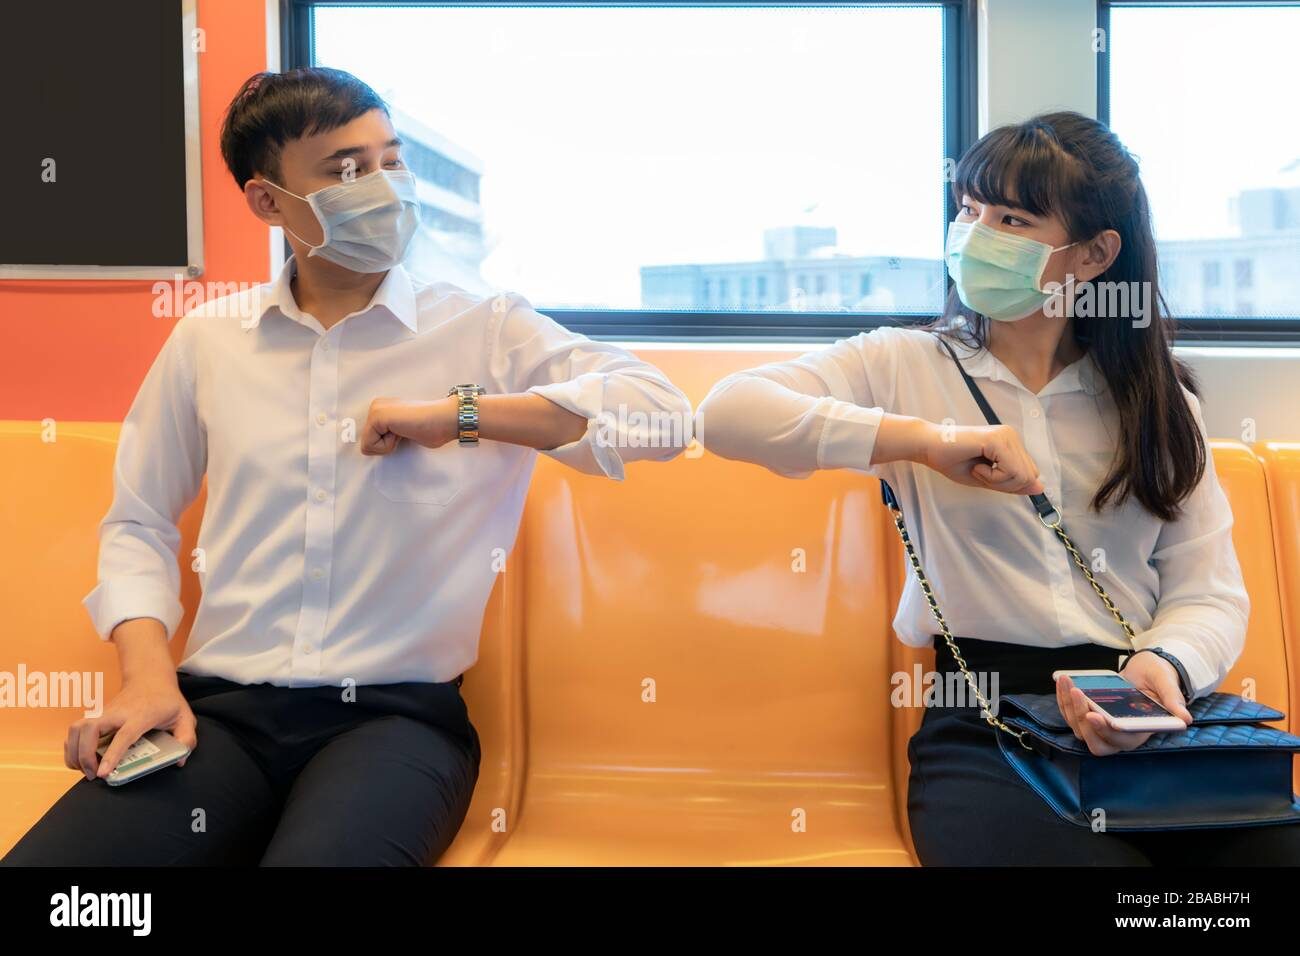 Elbow bump is new novel greeting to avoid the spread of coronavirus. Two Asian business friends meet in subway. Instead of greeting with a hug or hand Stock Photo